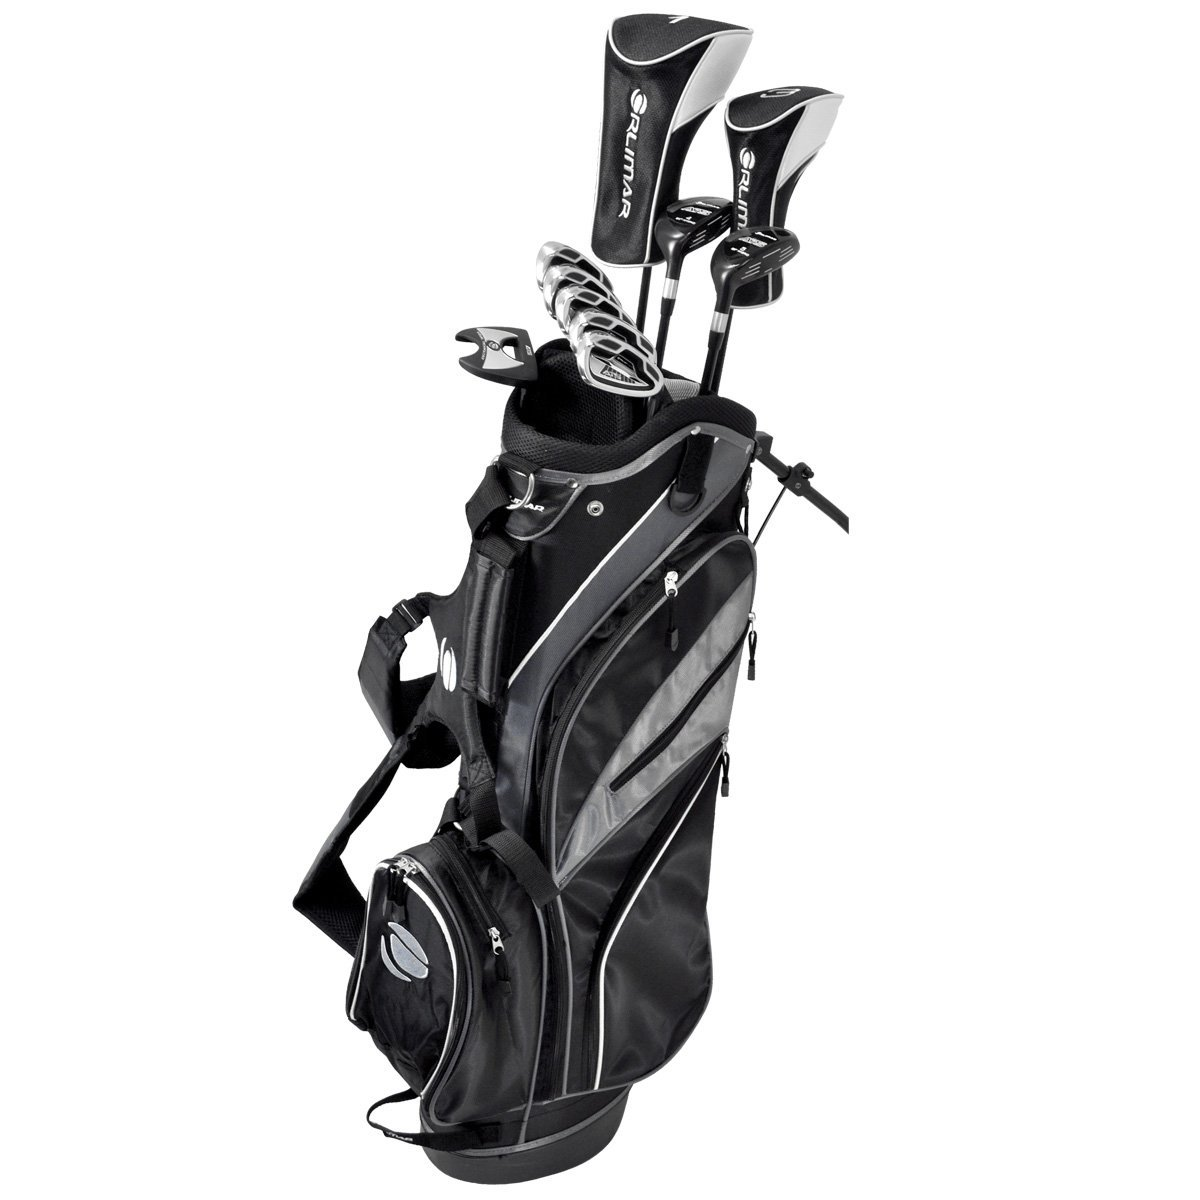 Orlimar Complete Golf Club Sets